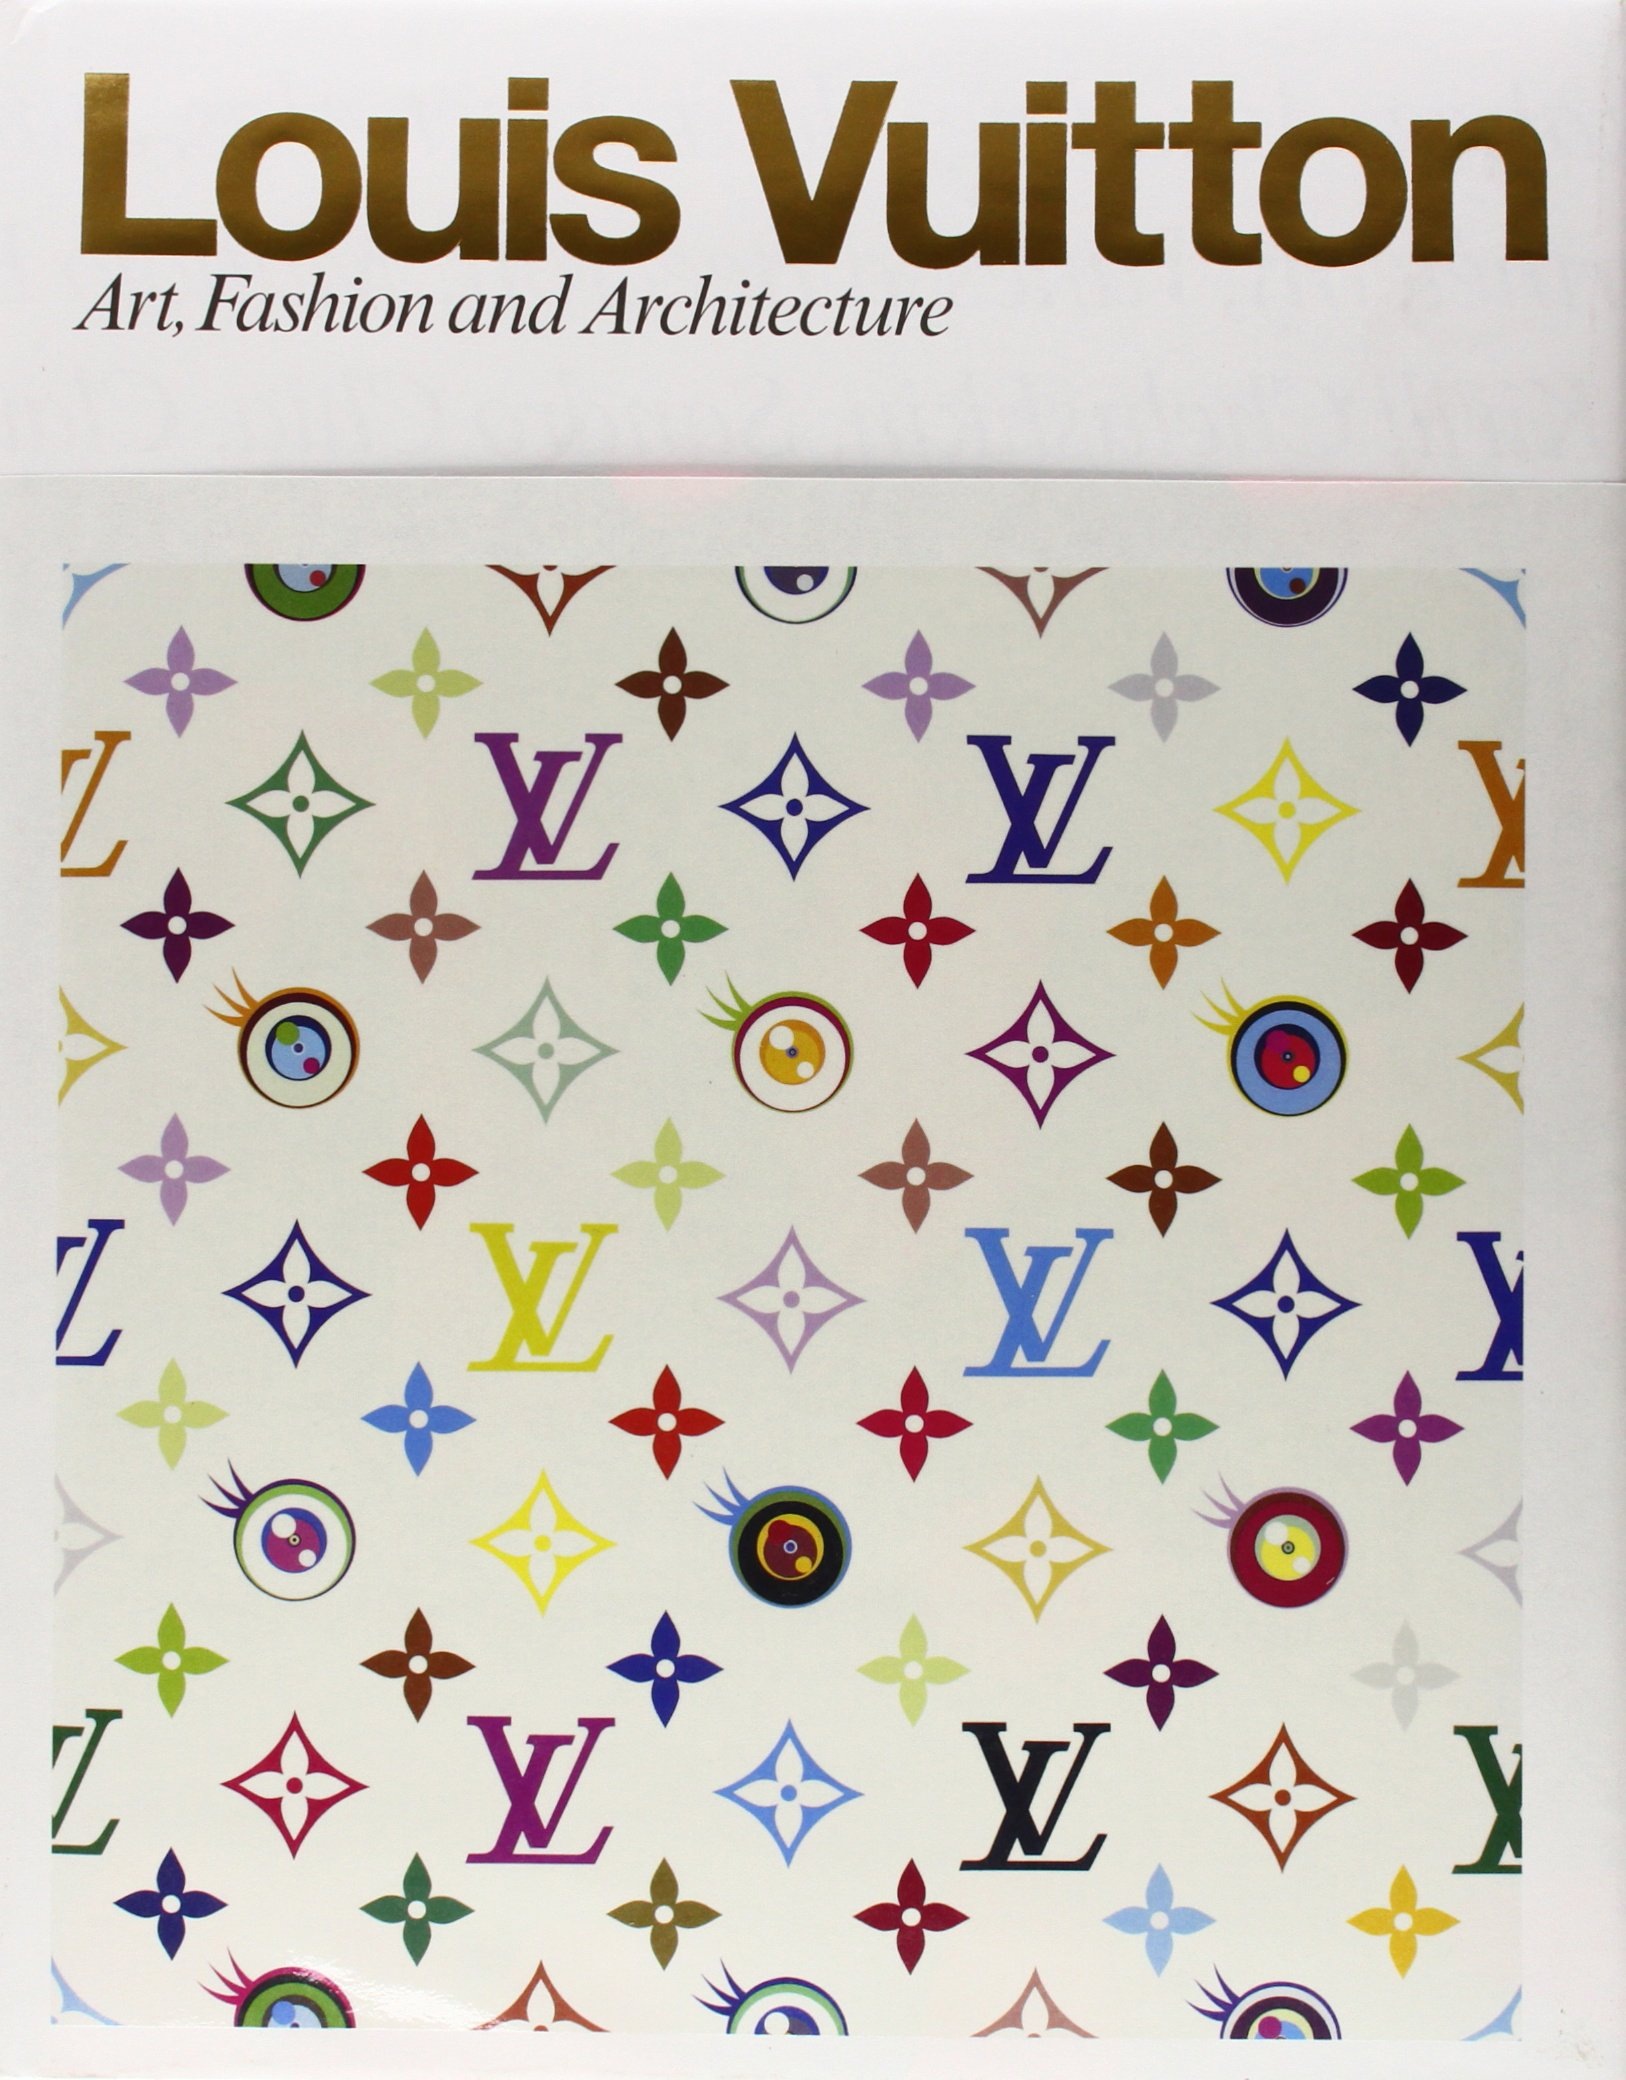 Louis Vuitton Art Fashion and Architecture Jill Gasparina